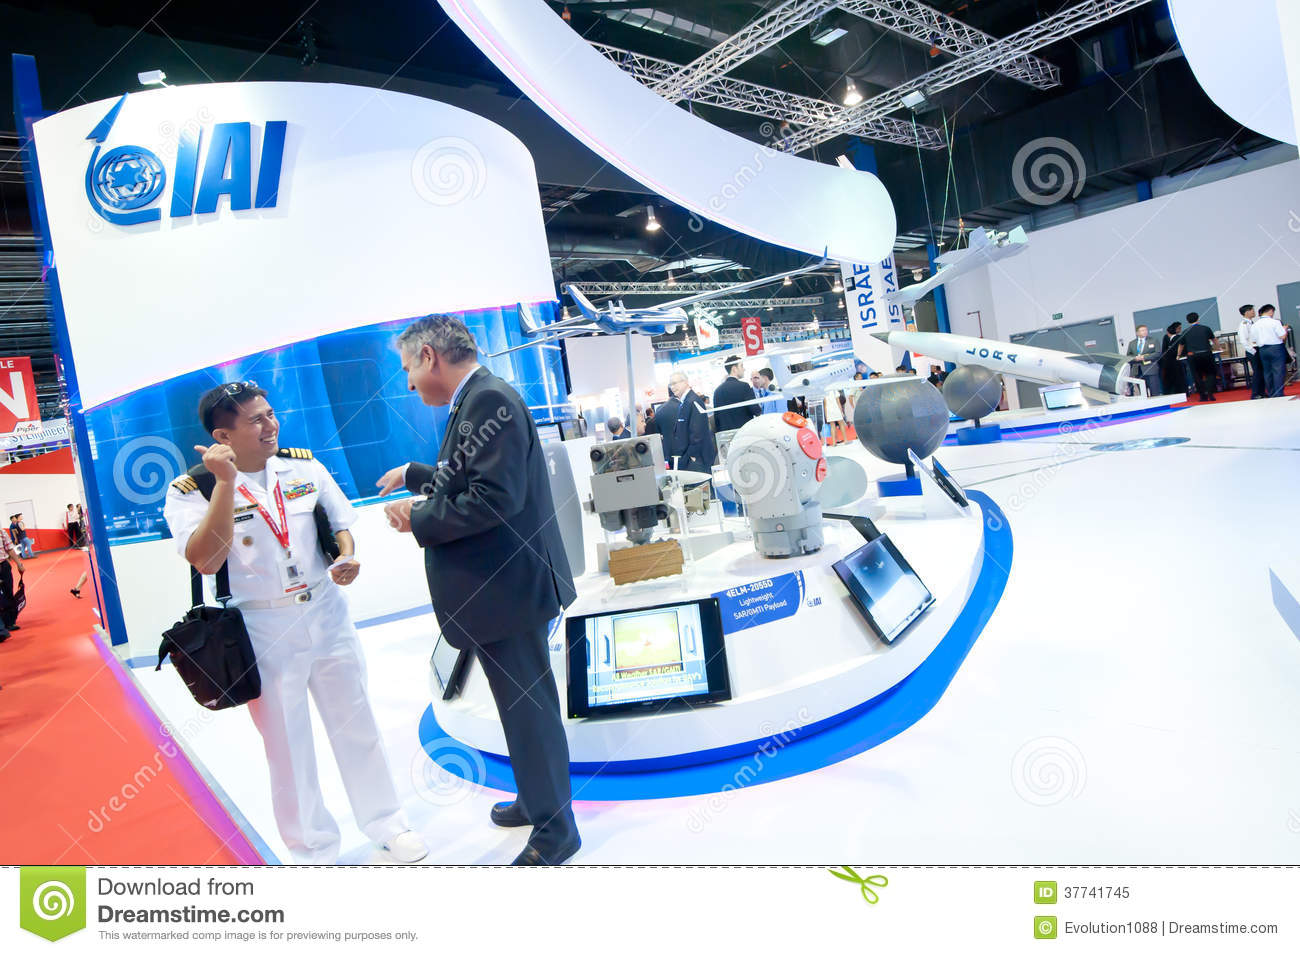 Business deals at the Singapore Airshow 2014